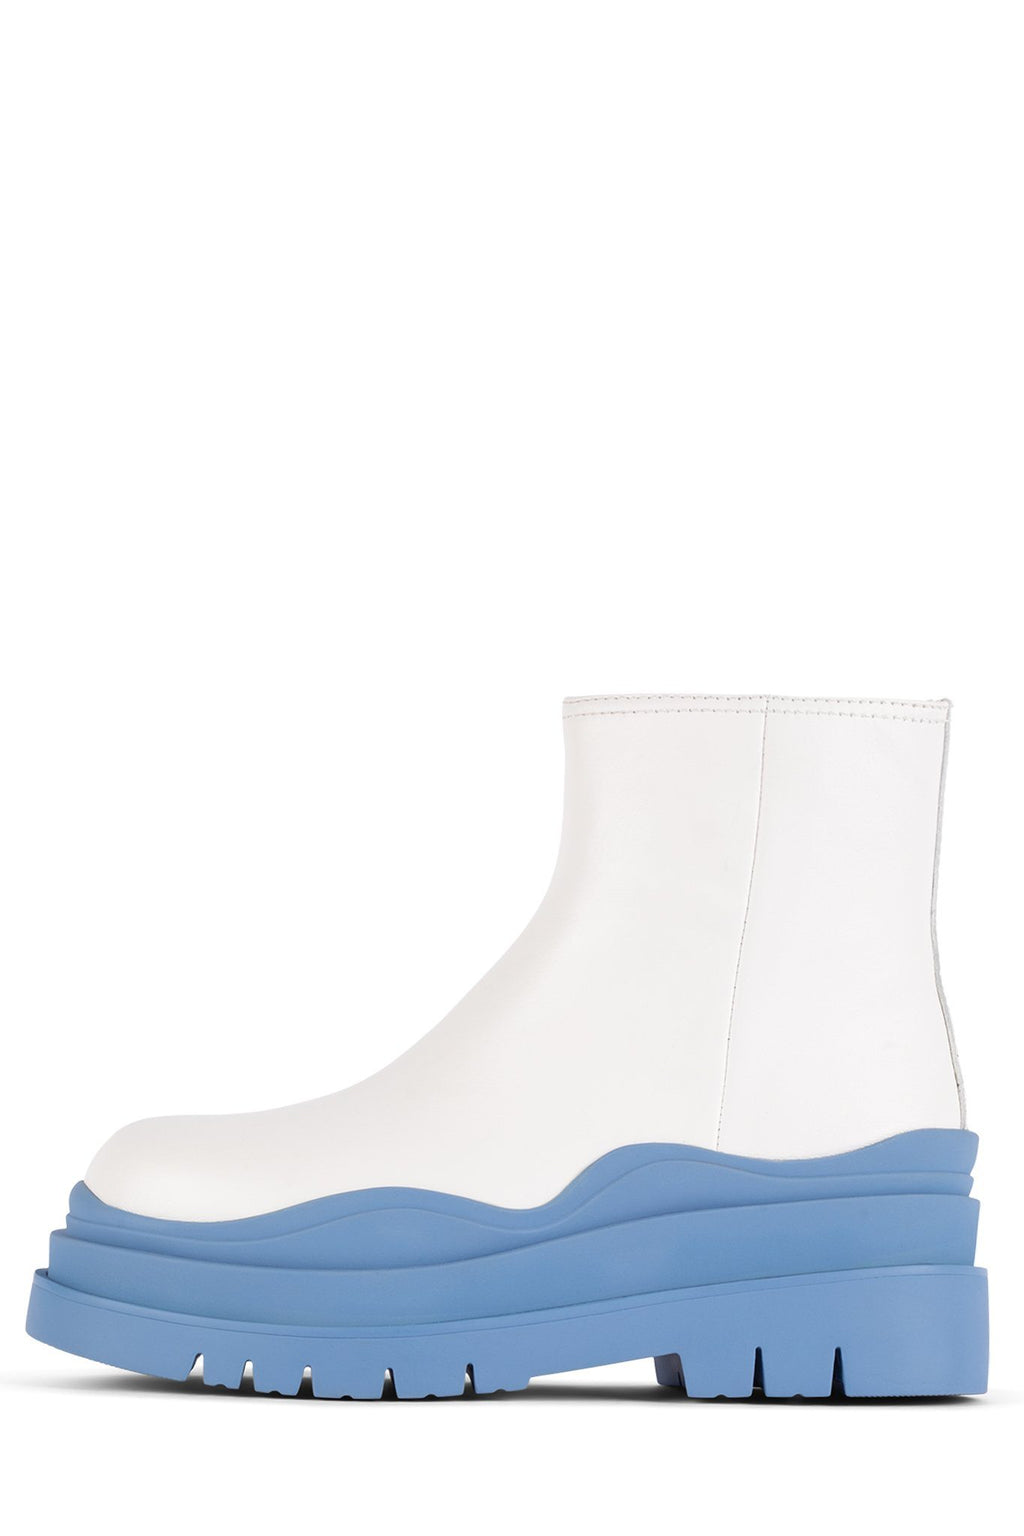 LOADING Bootie Jeffrey Campbell White Blue 6